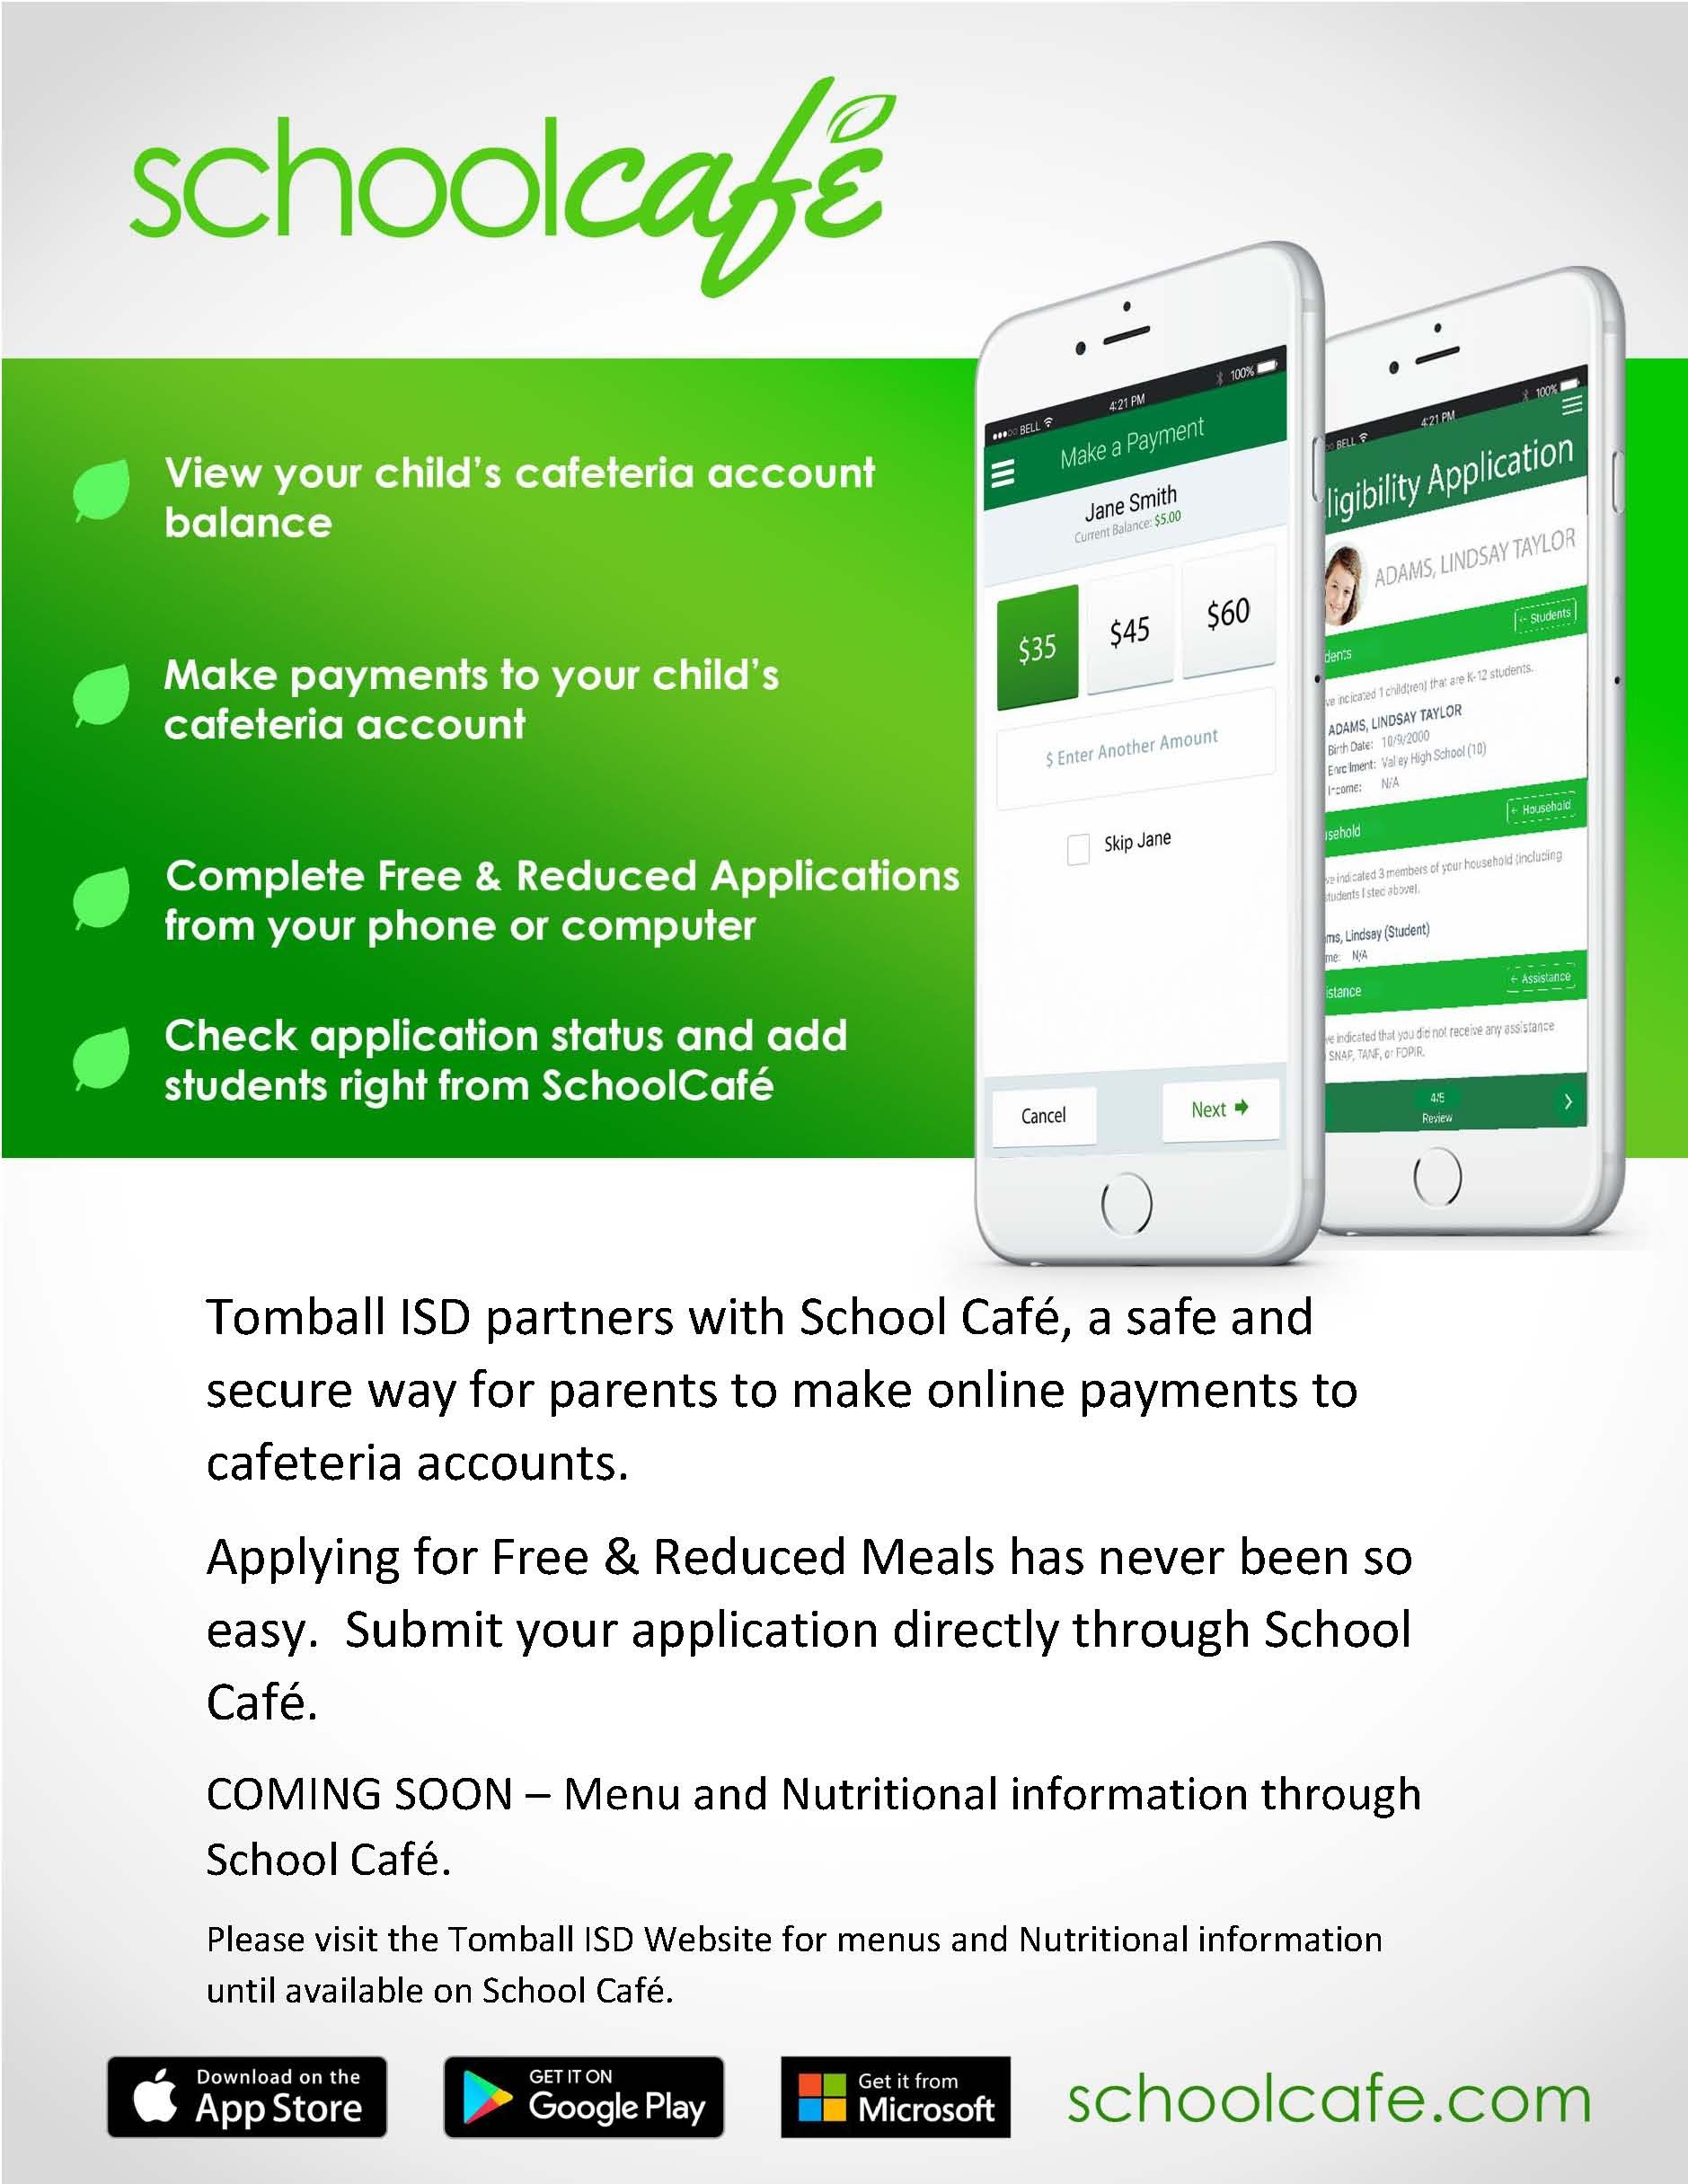 Photo of SchoolCafe mobile device app.